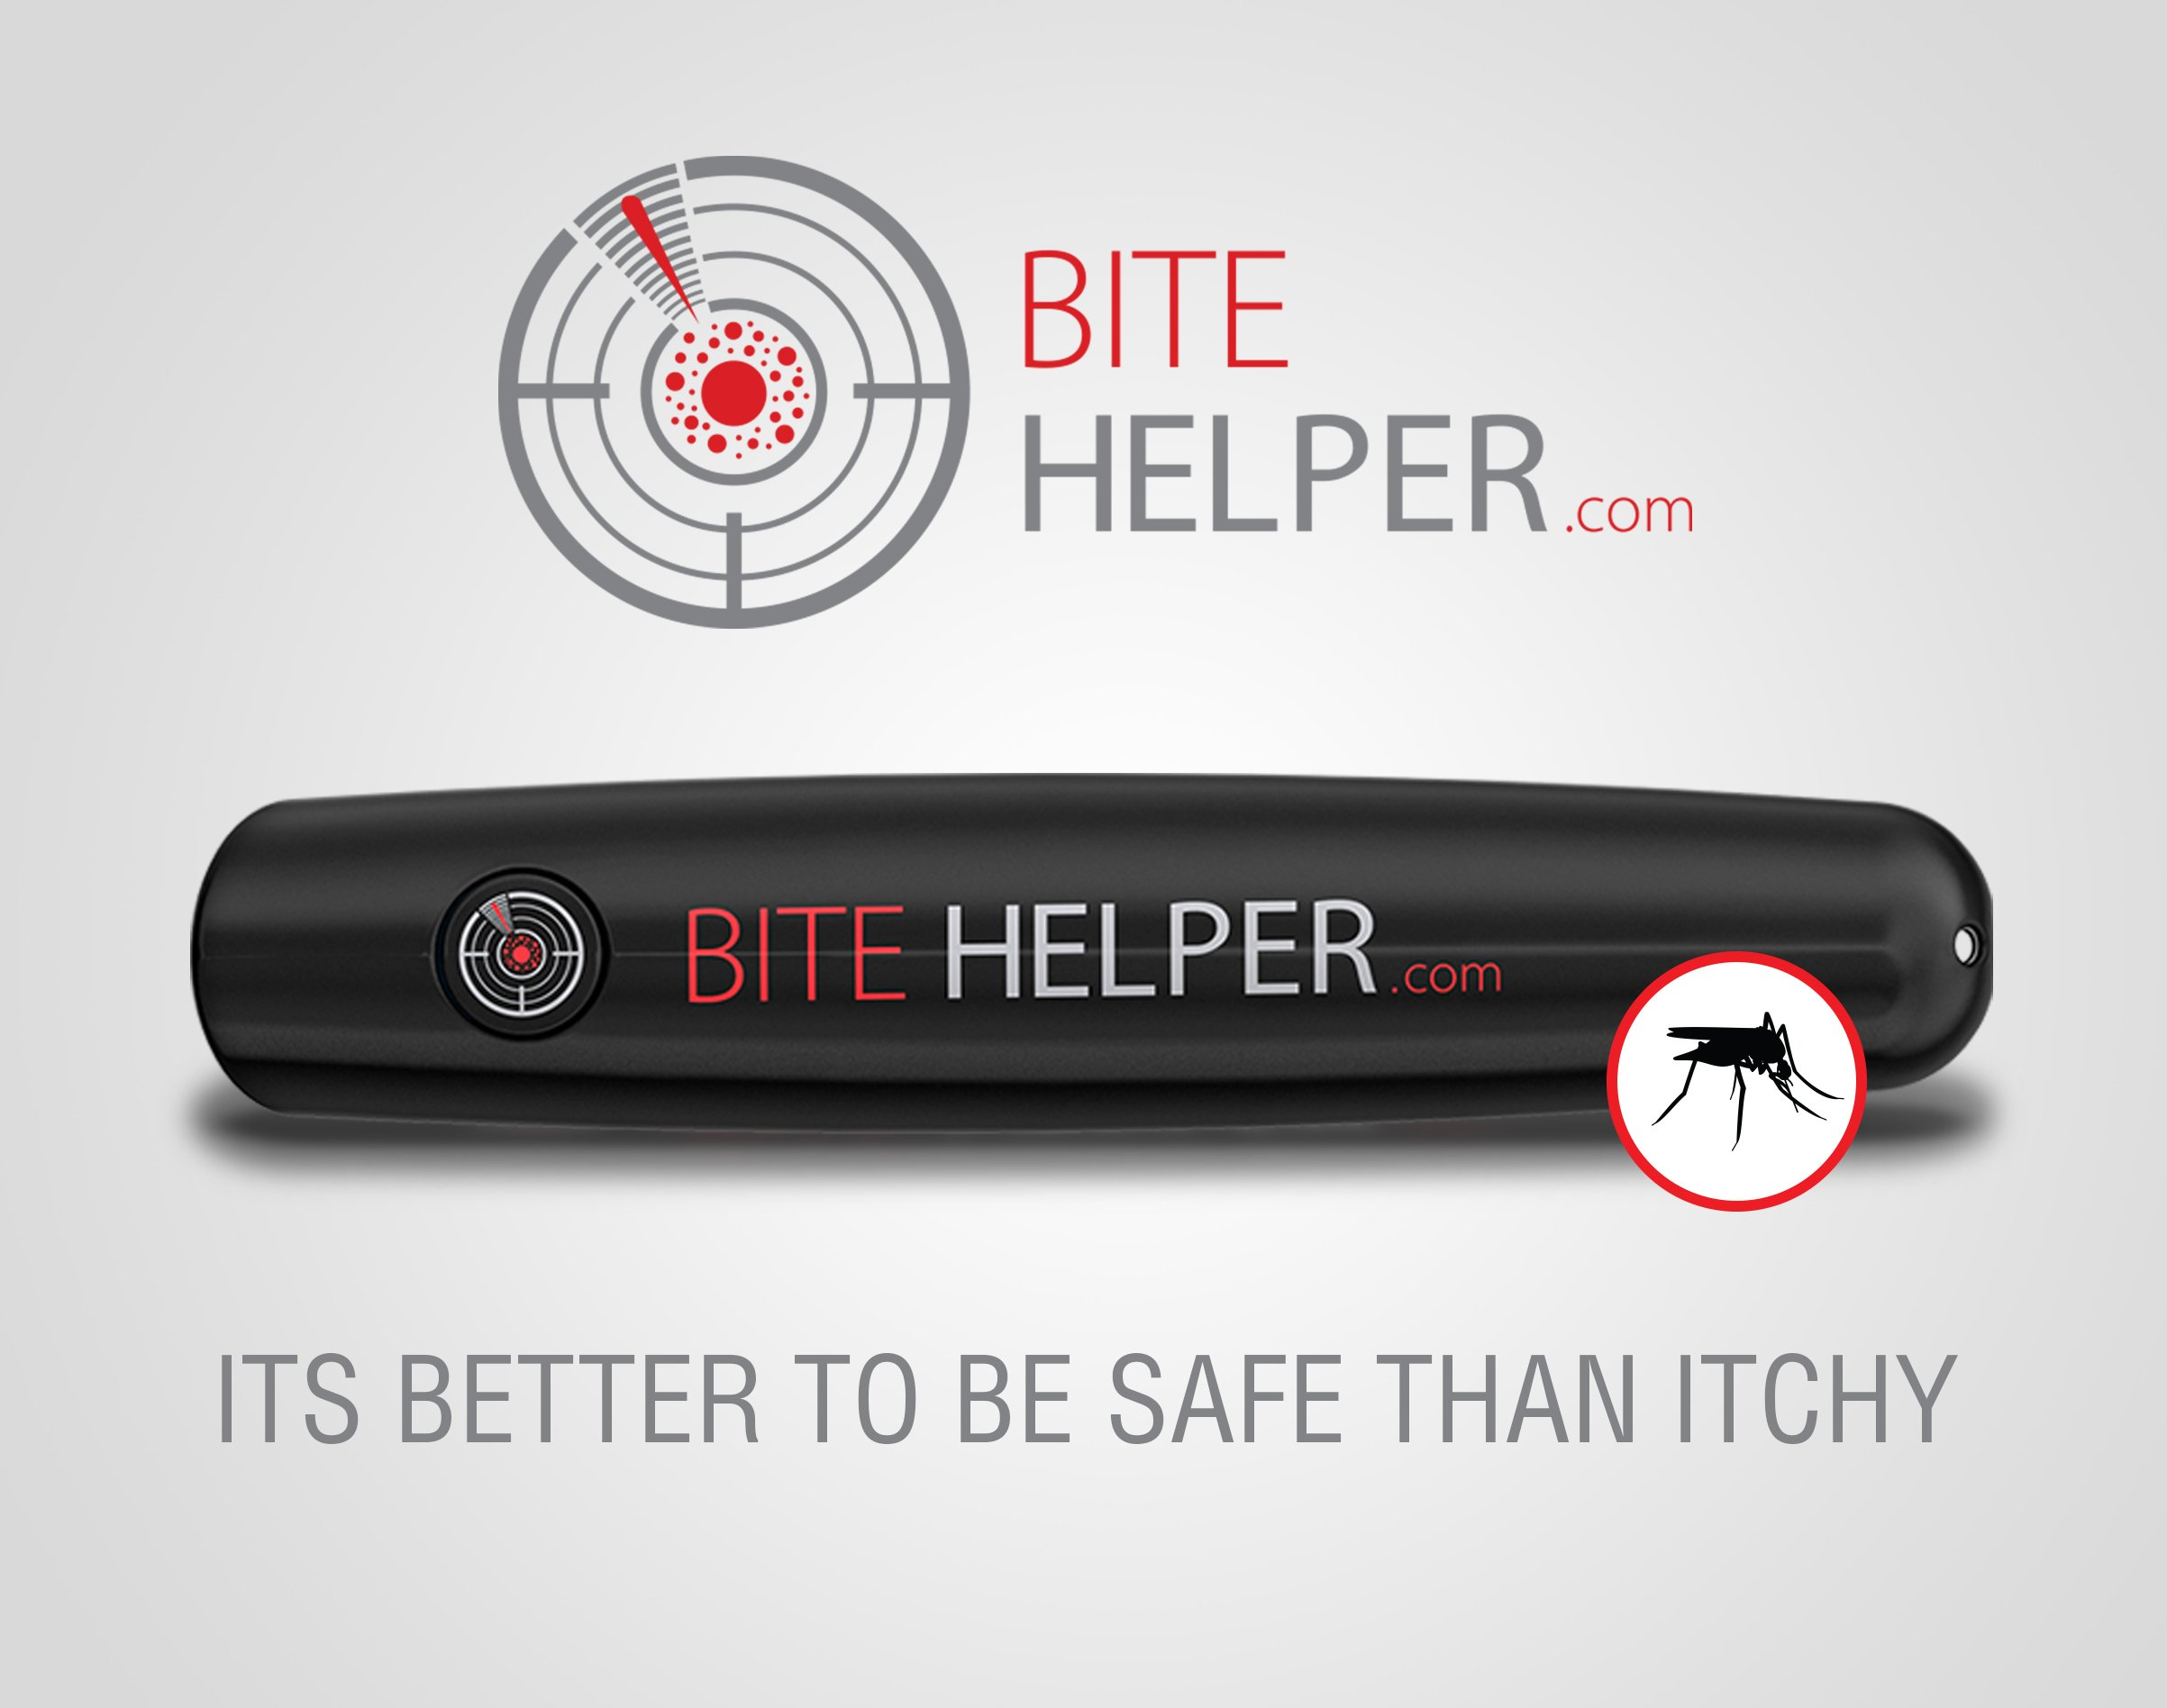 Bite Helper - Bug Bite Itch Neutralizer, Itch Relief Solution for the Entire Family